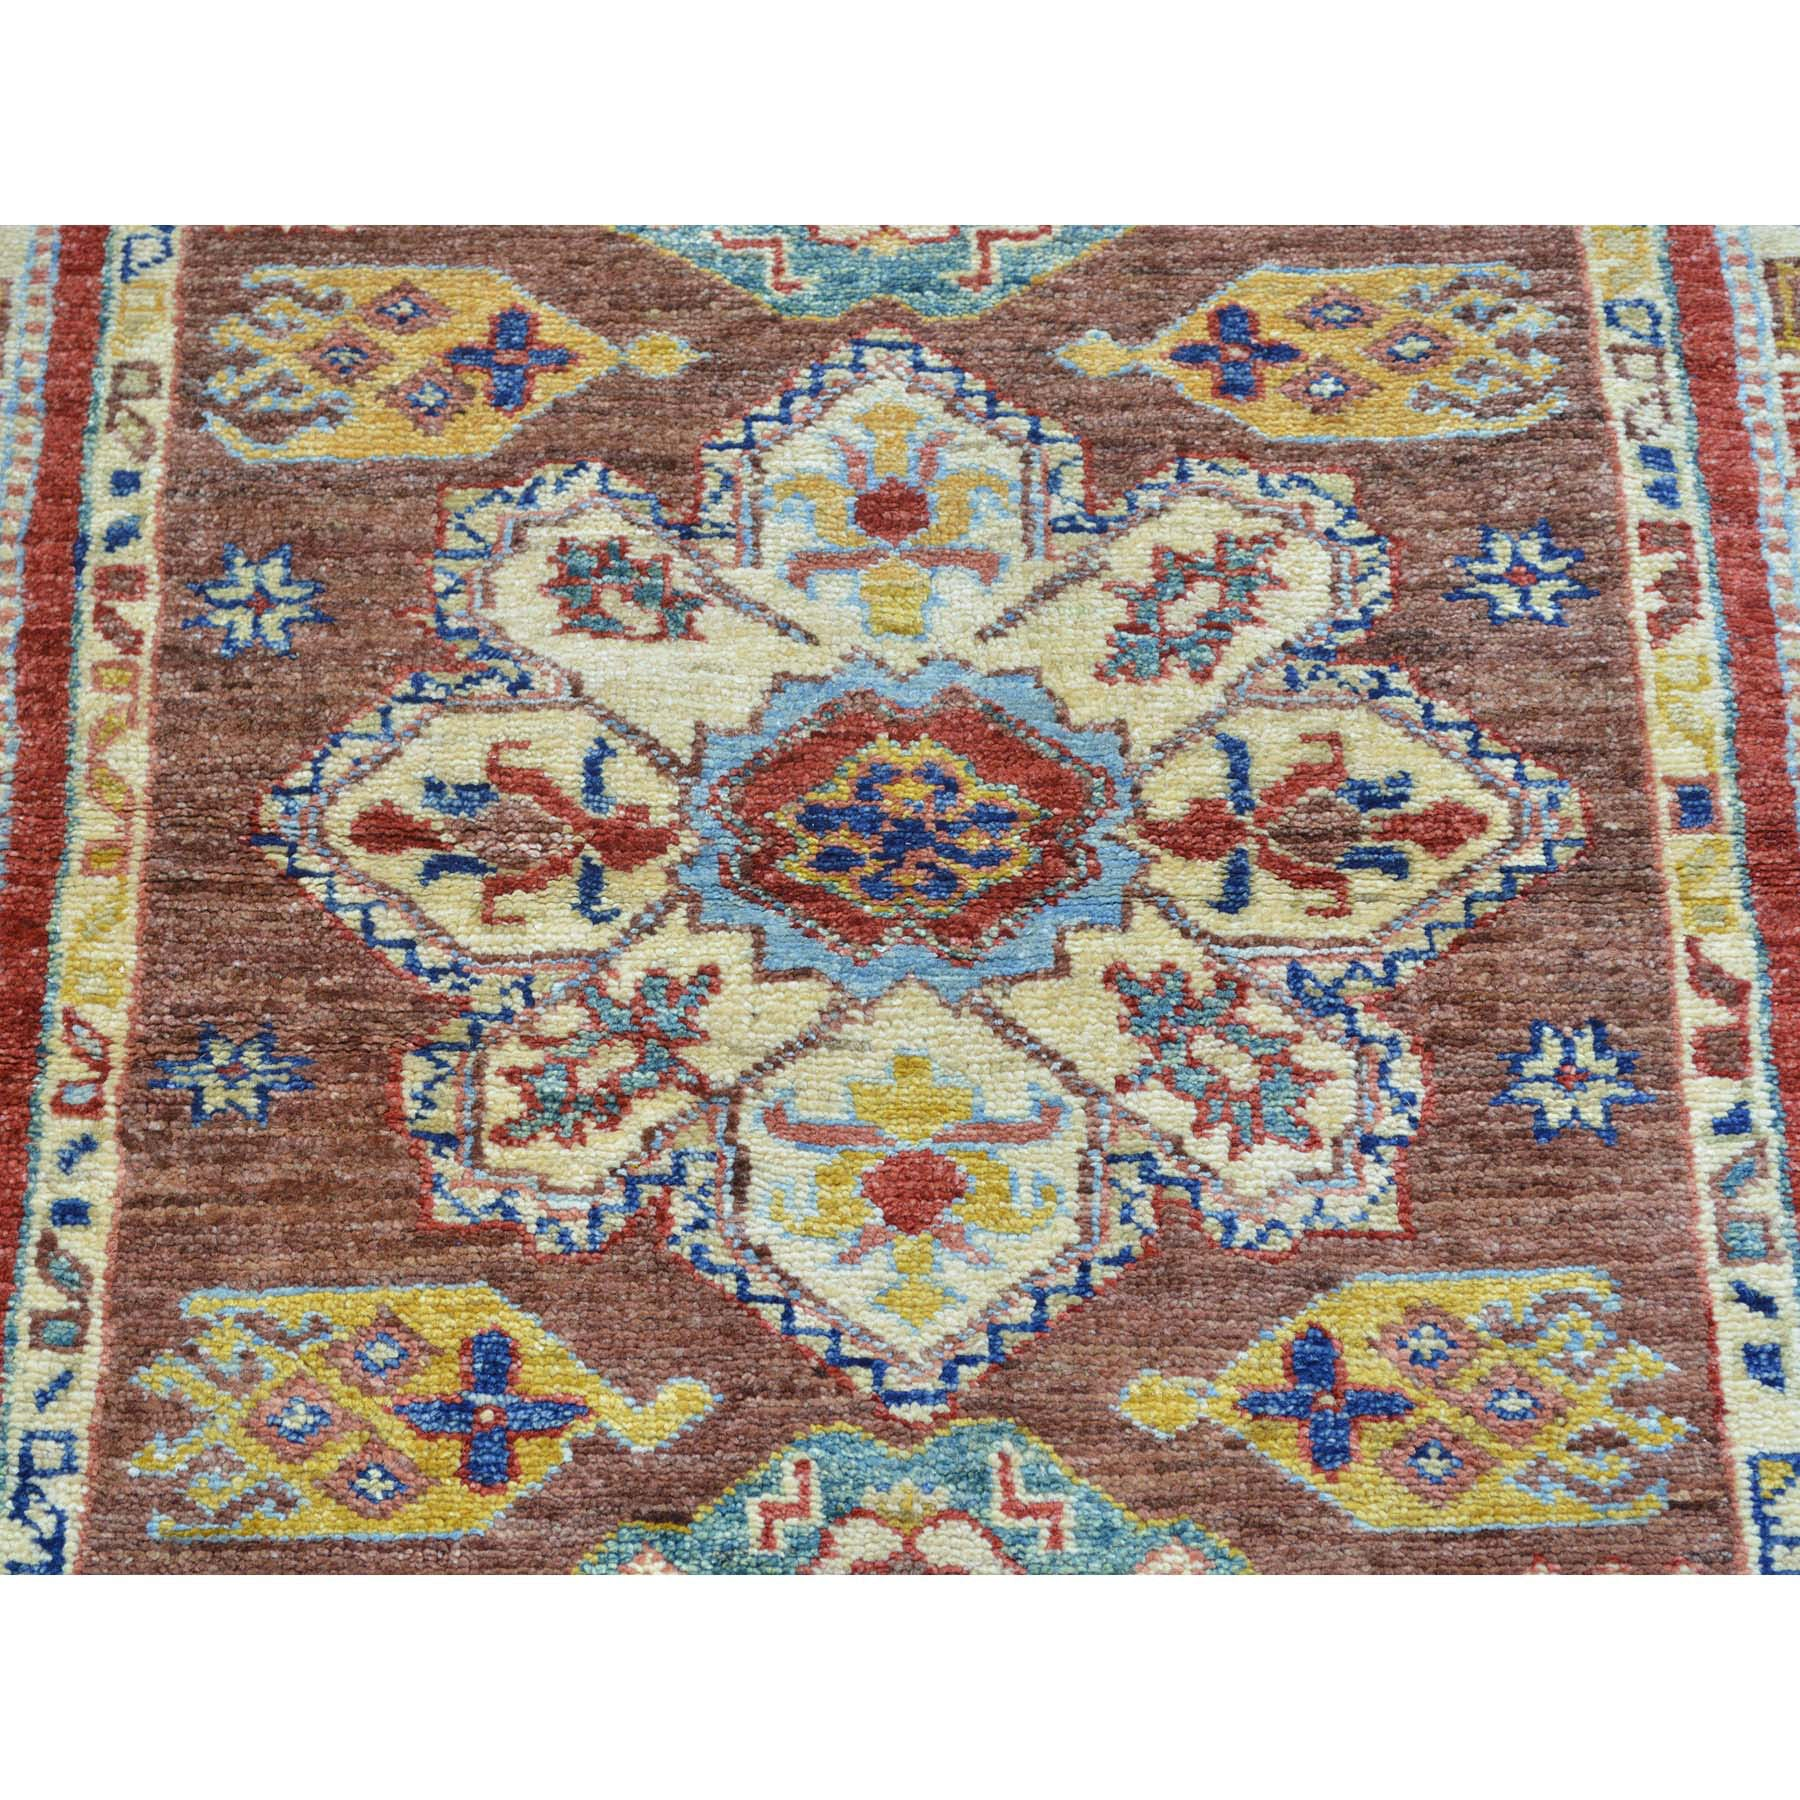 "Handmade Kazak Rectangle Rug > Design# SH26984 > Size: 3'-2"" x 5'-2"" [ONLINE ONLY]"